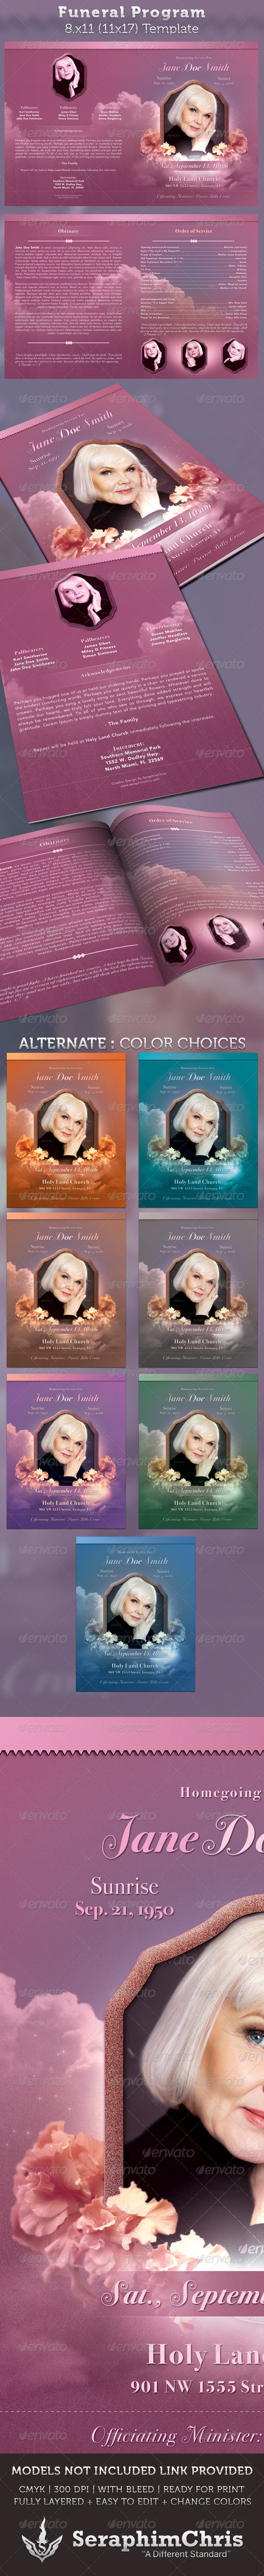 Funeral Program Full Page Bi-Fold Template - Church Flyers